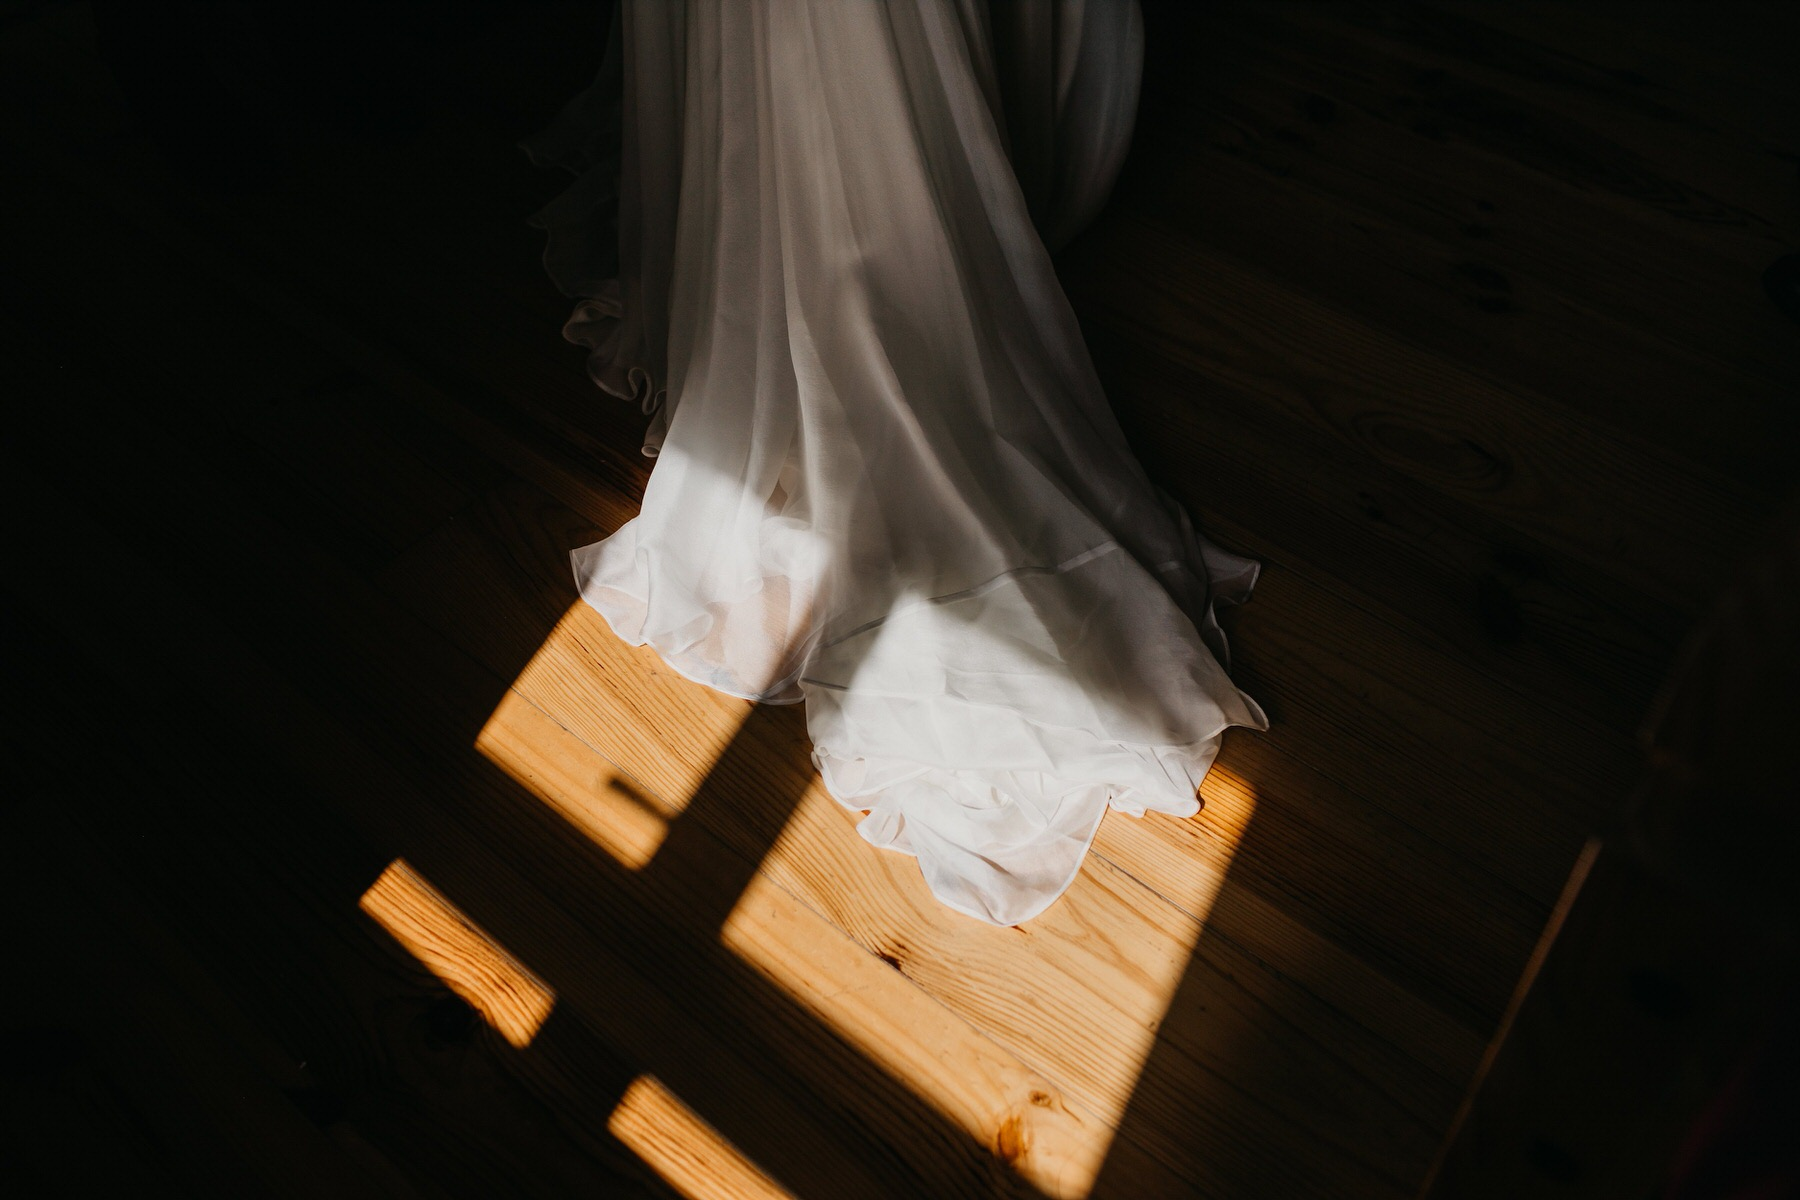 Wedding dress in the light from the window